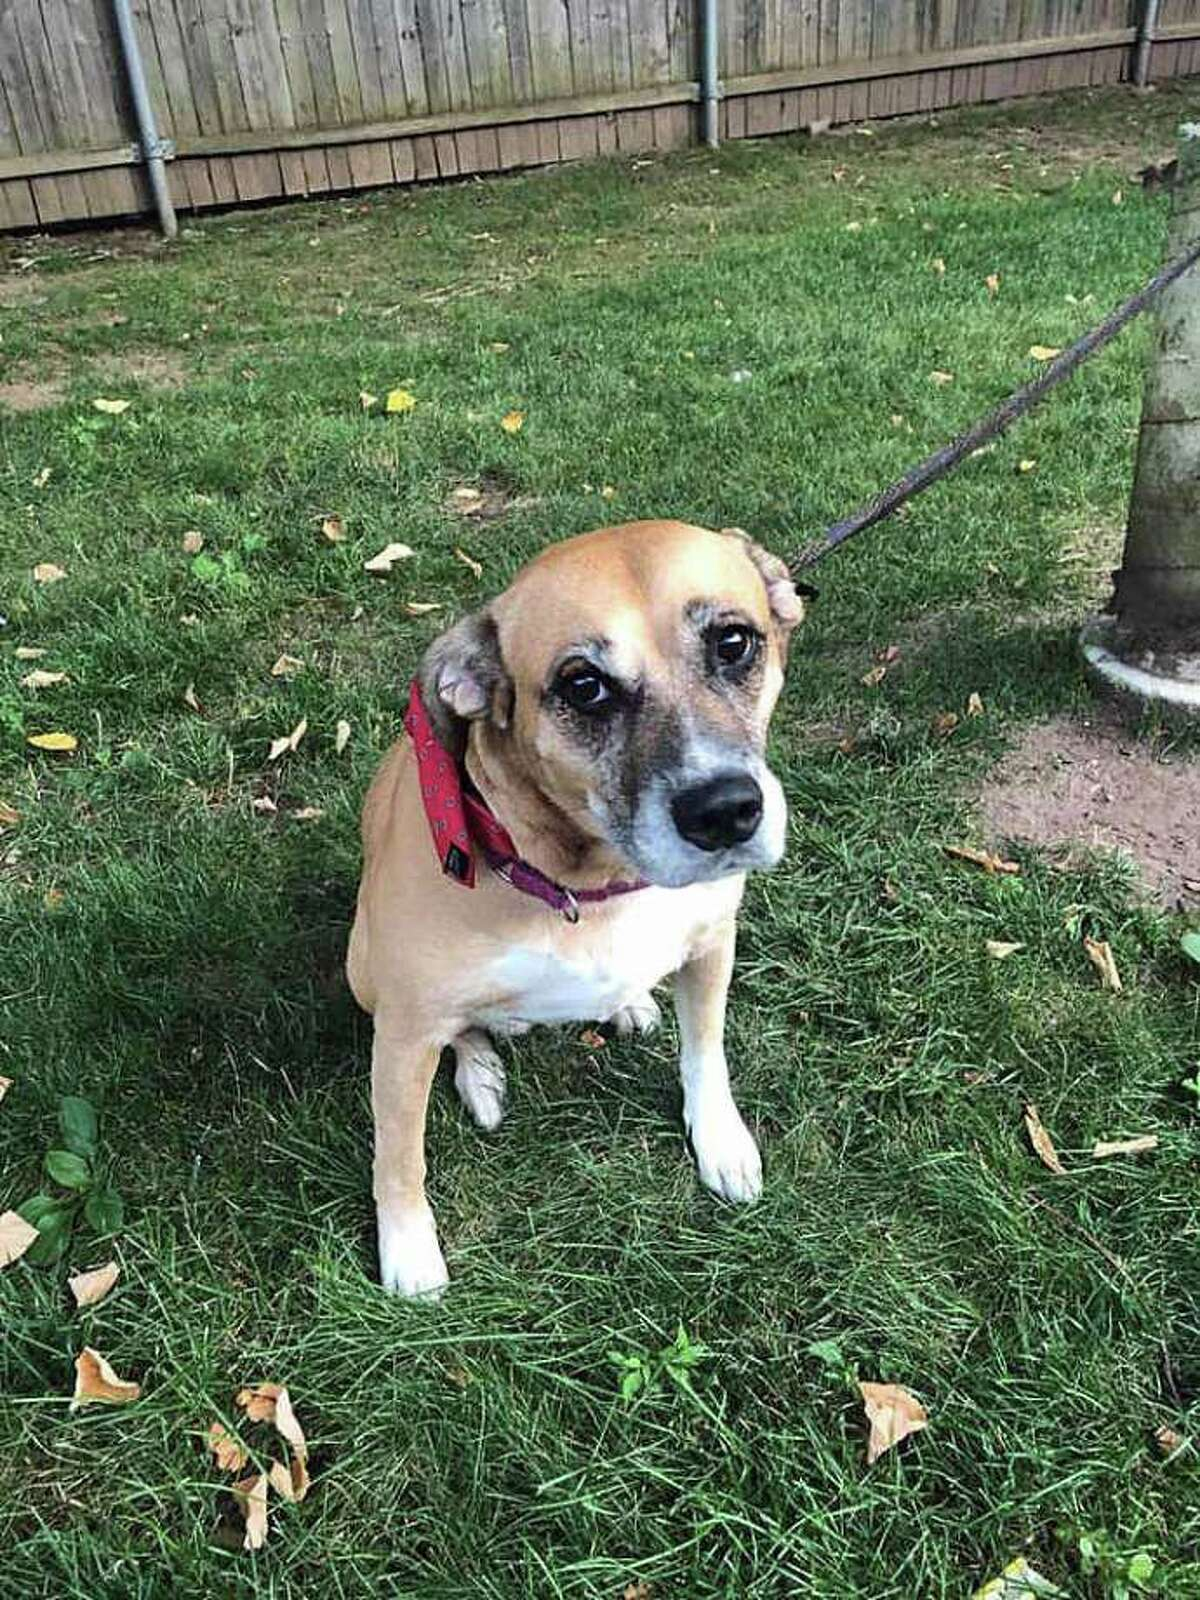 West Haven Animal Control said a dog was found tied to a pole with a necktie at an apartment complex located at 998 Campbell Ave. on Saturday, July 27, 2019.